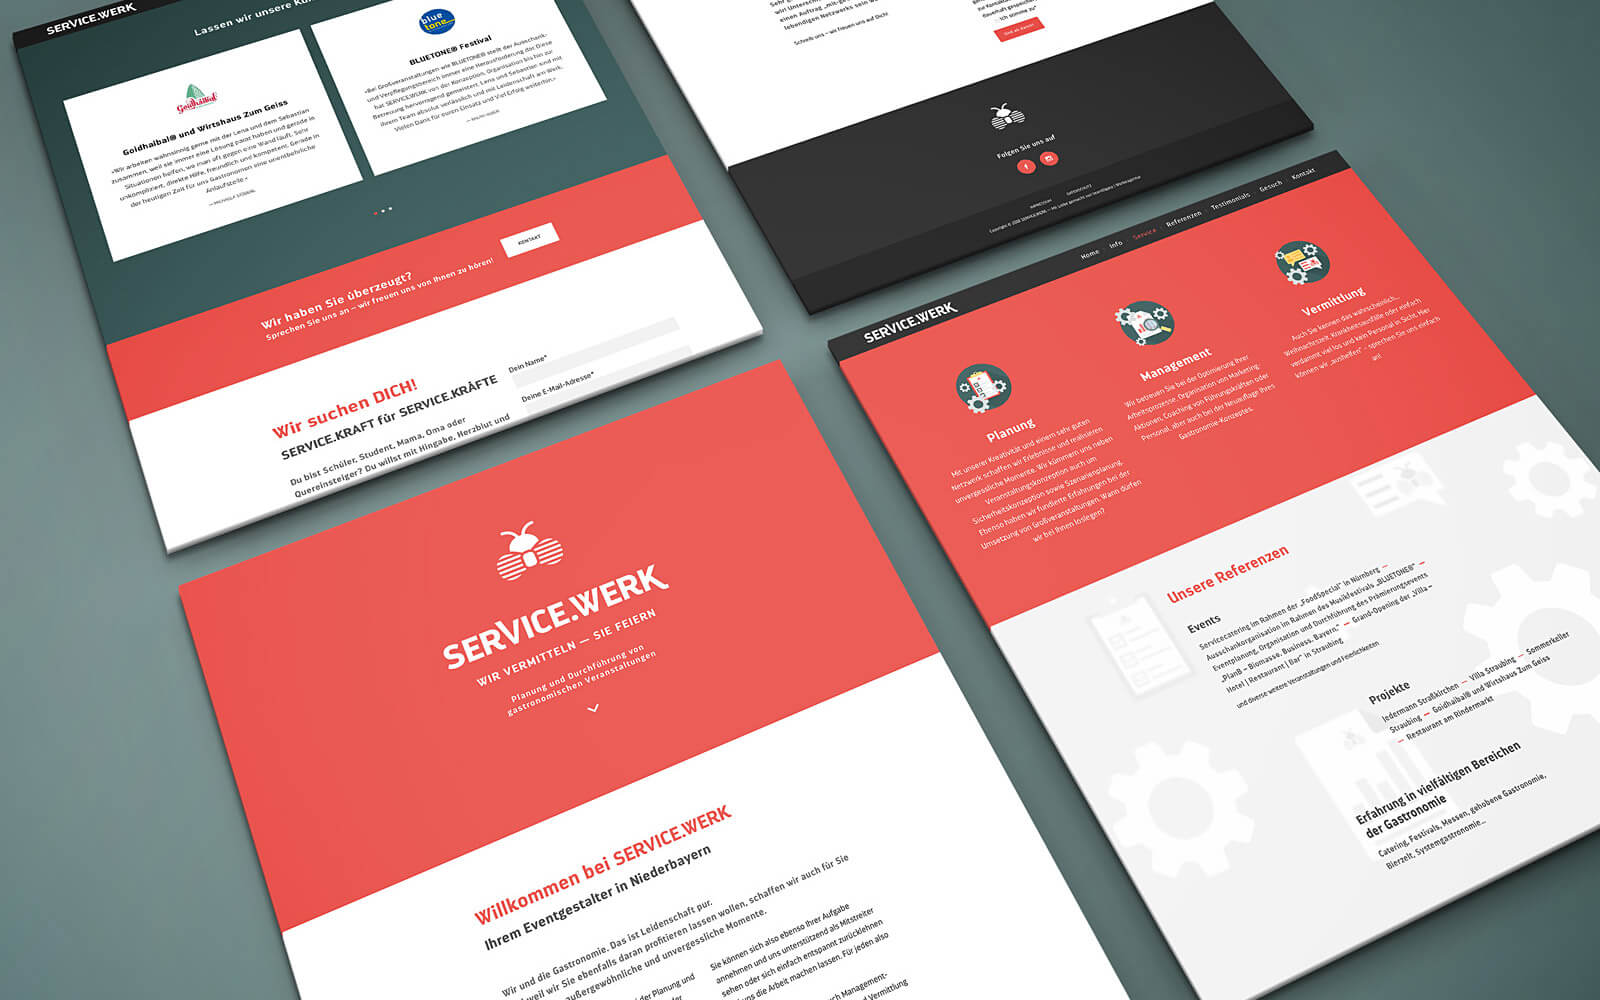 SERVICE.WERK – Website